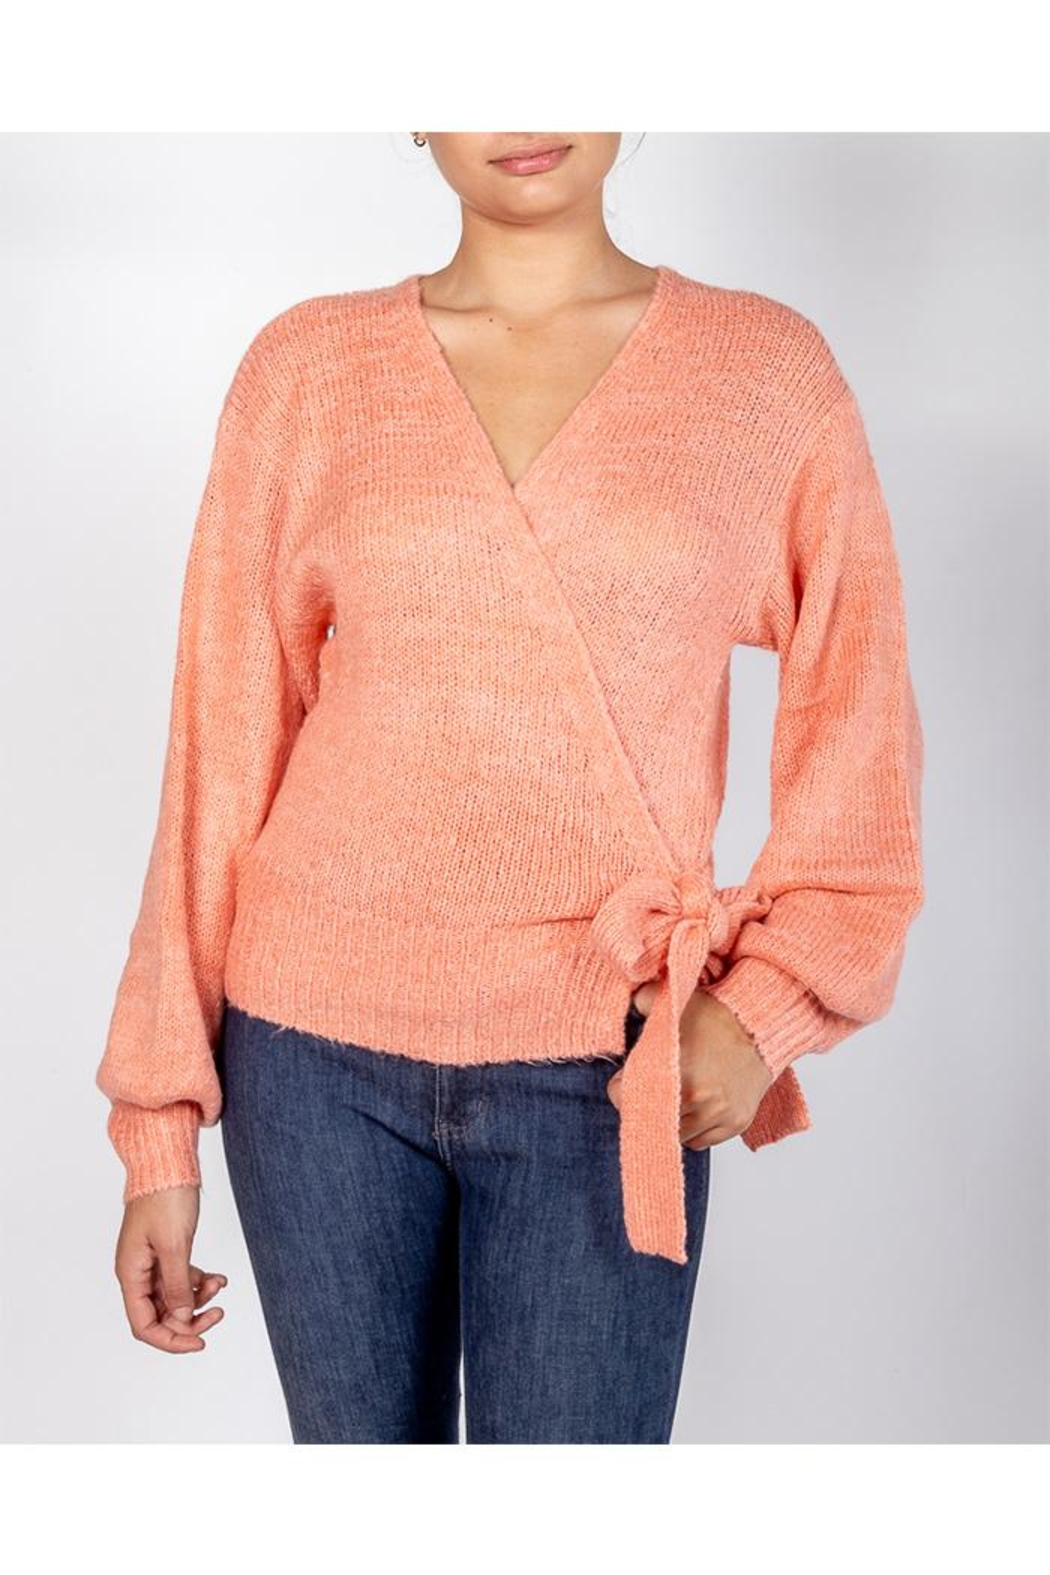 Cotton Candy Coral Wrap Sweater - Main Image